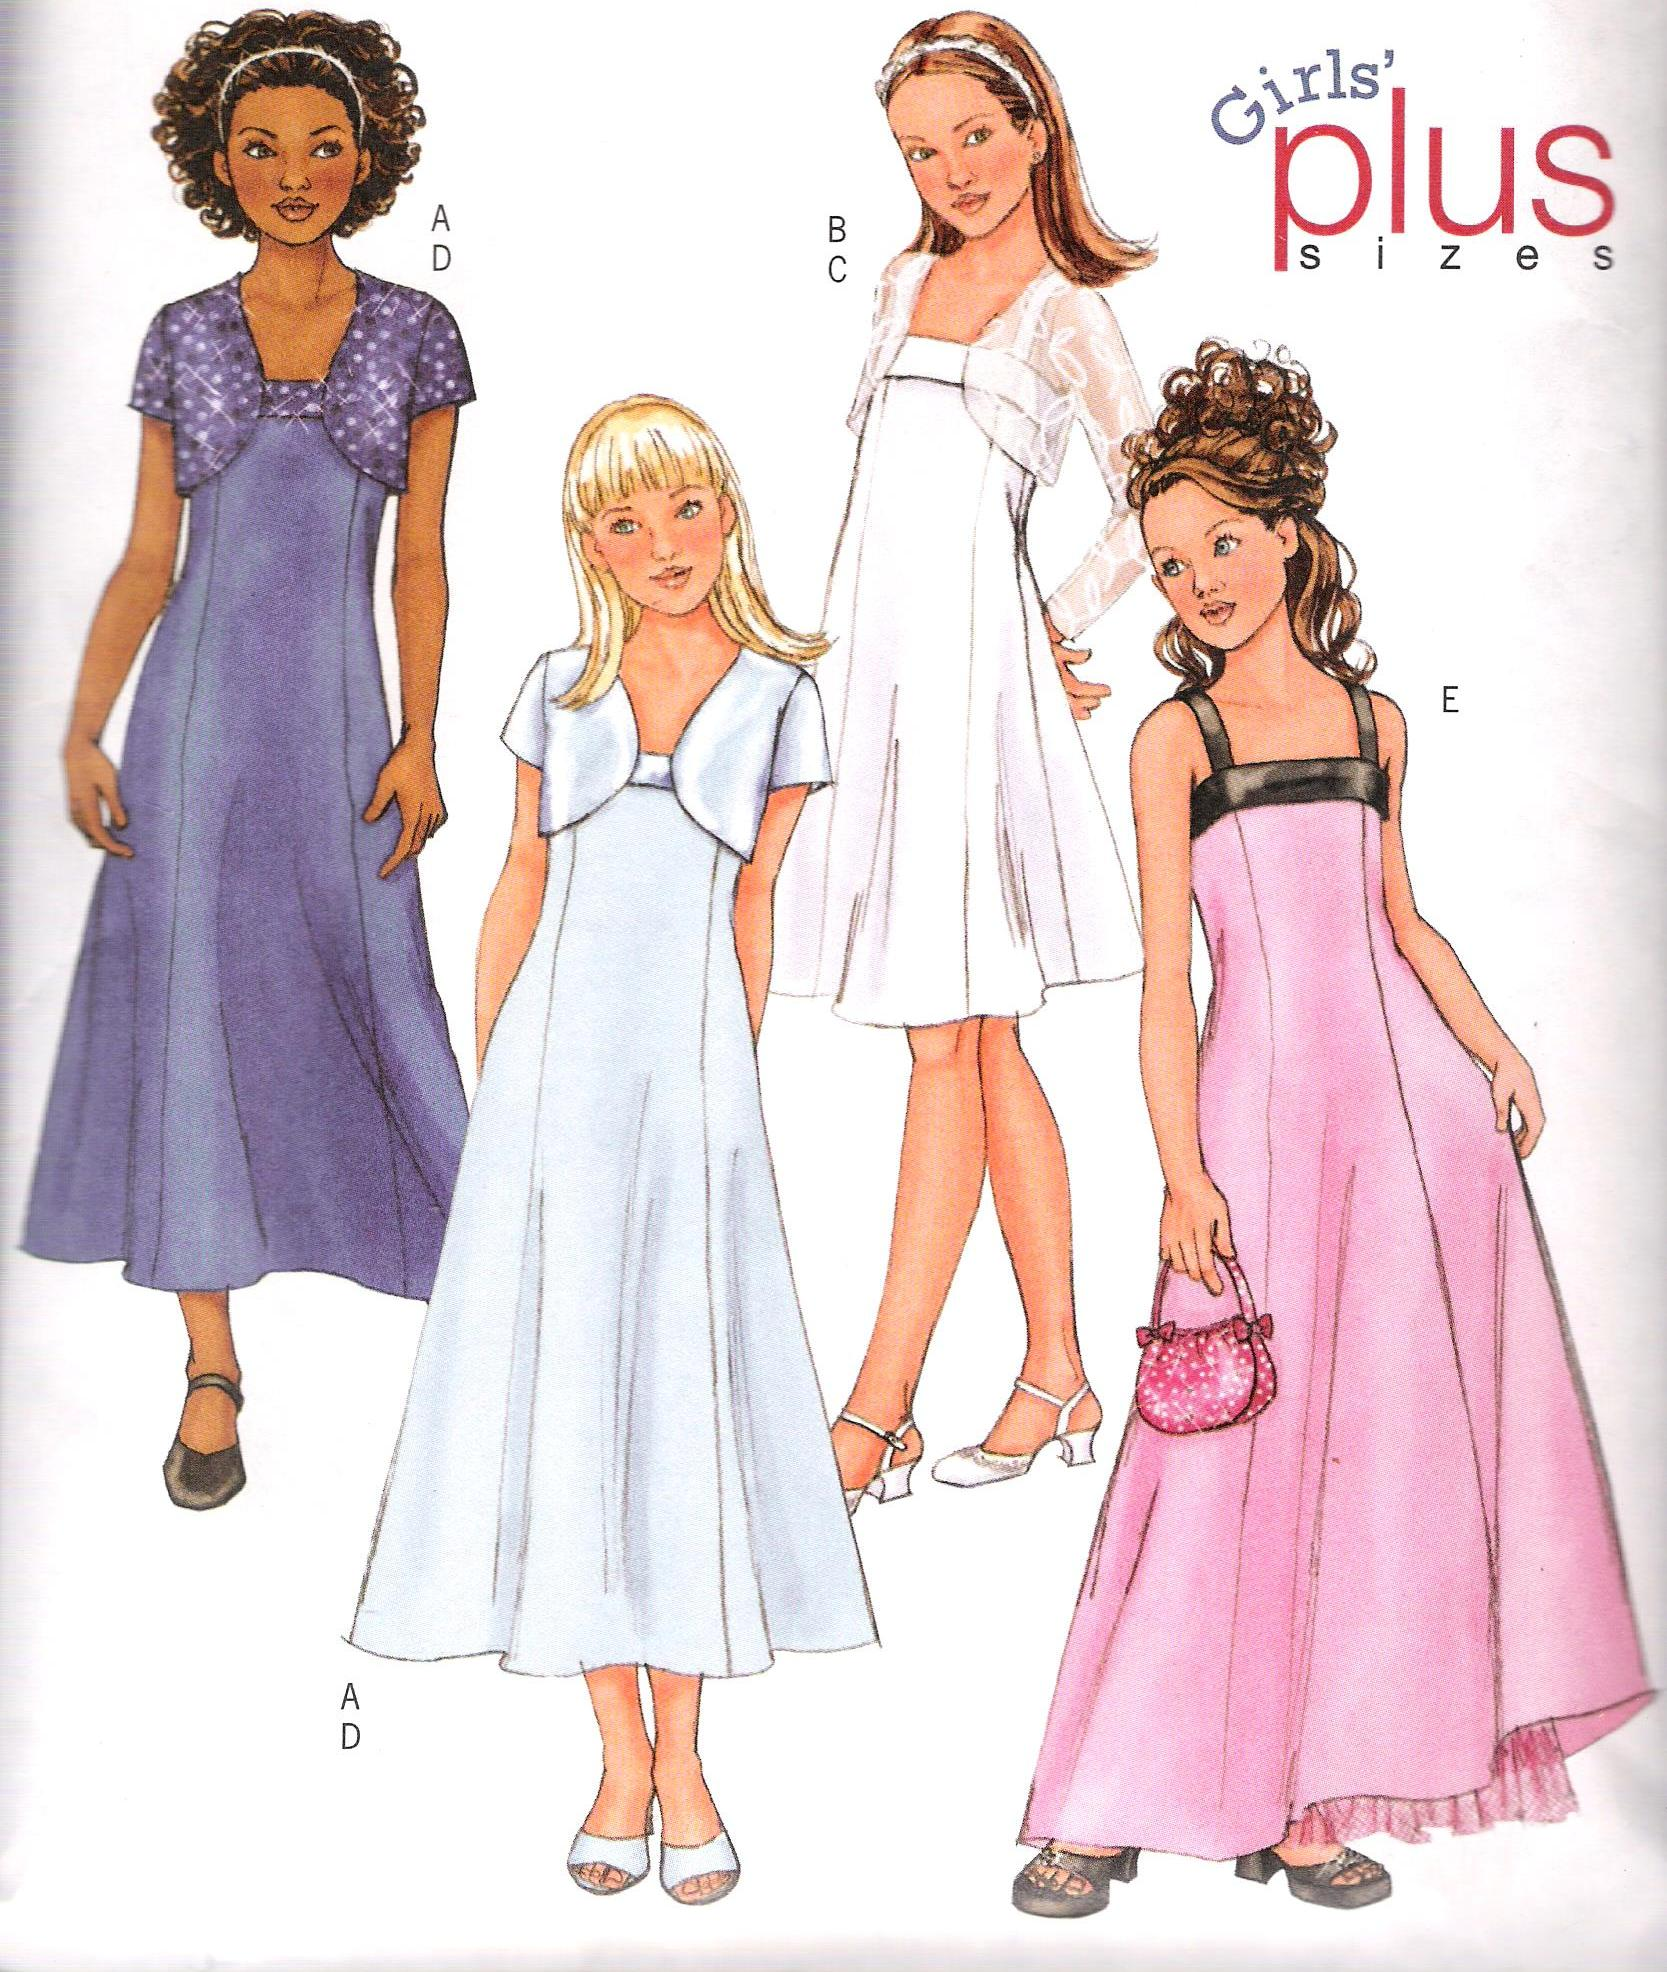 4385 Butterick Jacket Dress Sewing Pattern Plus Girls Size 7-14